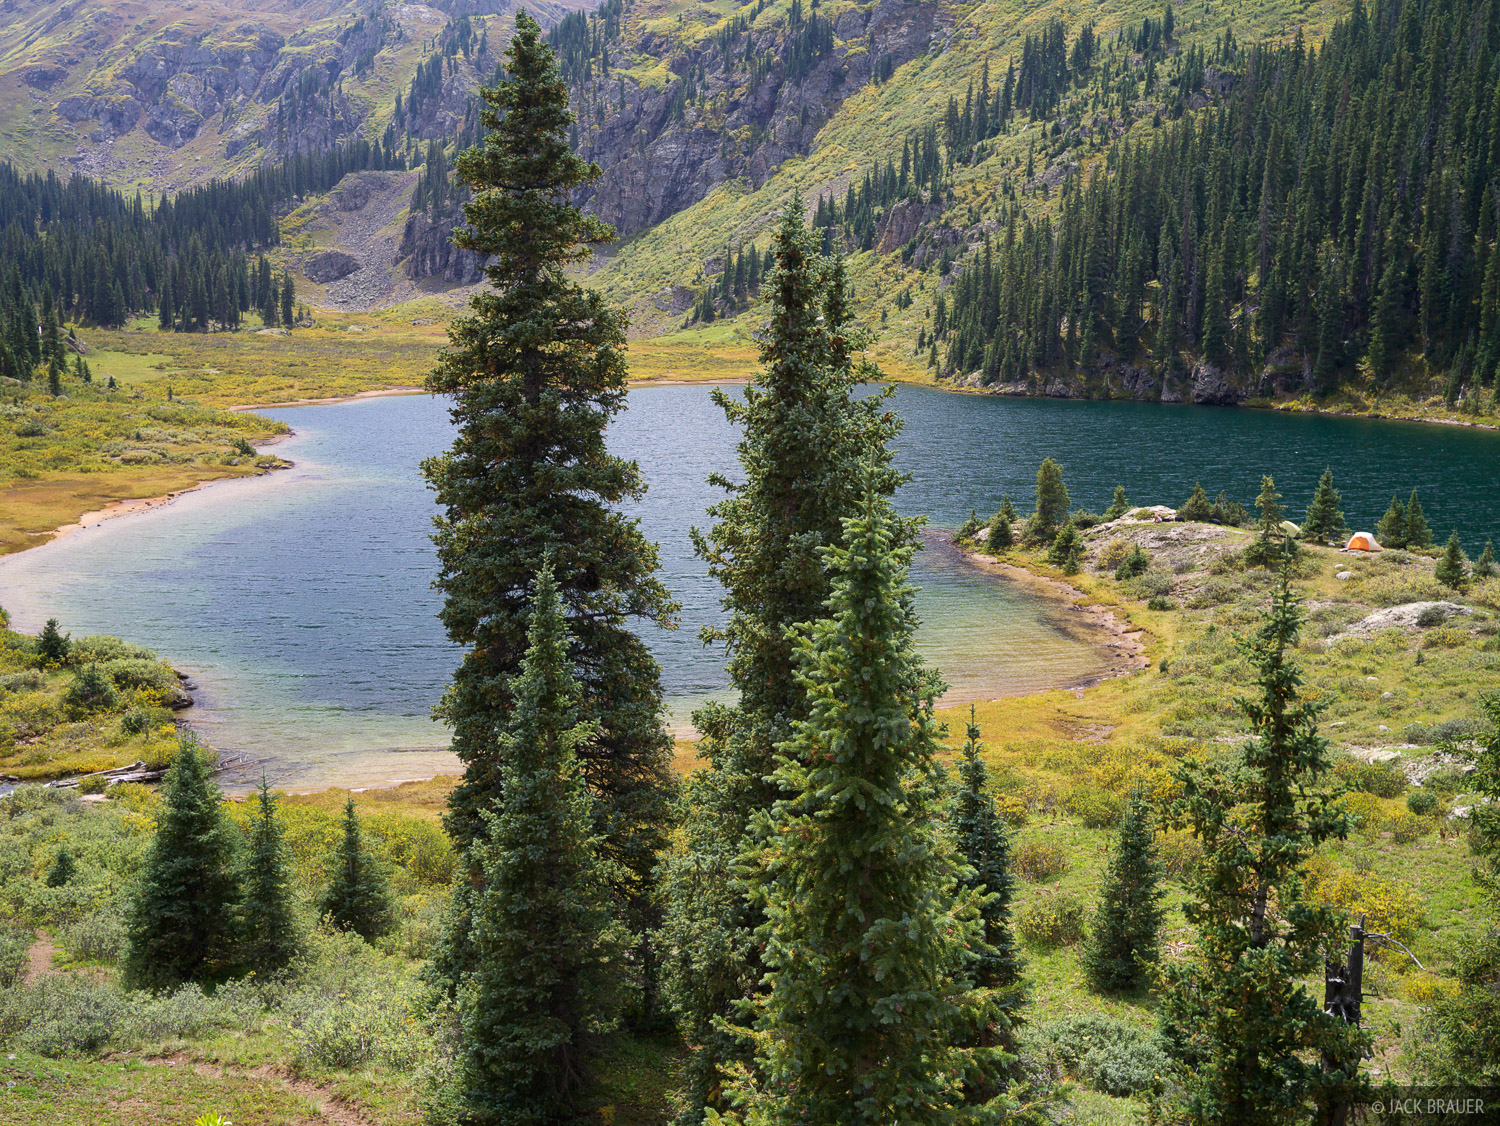 Emerald Lake, Weminuche Wilderness, San Juan Mountains, Colorado, september, photo